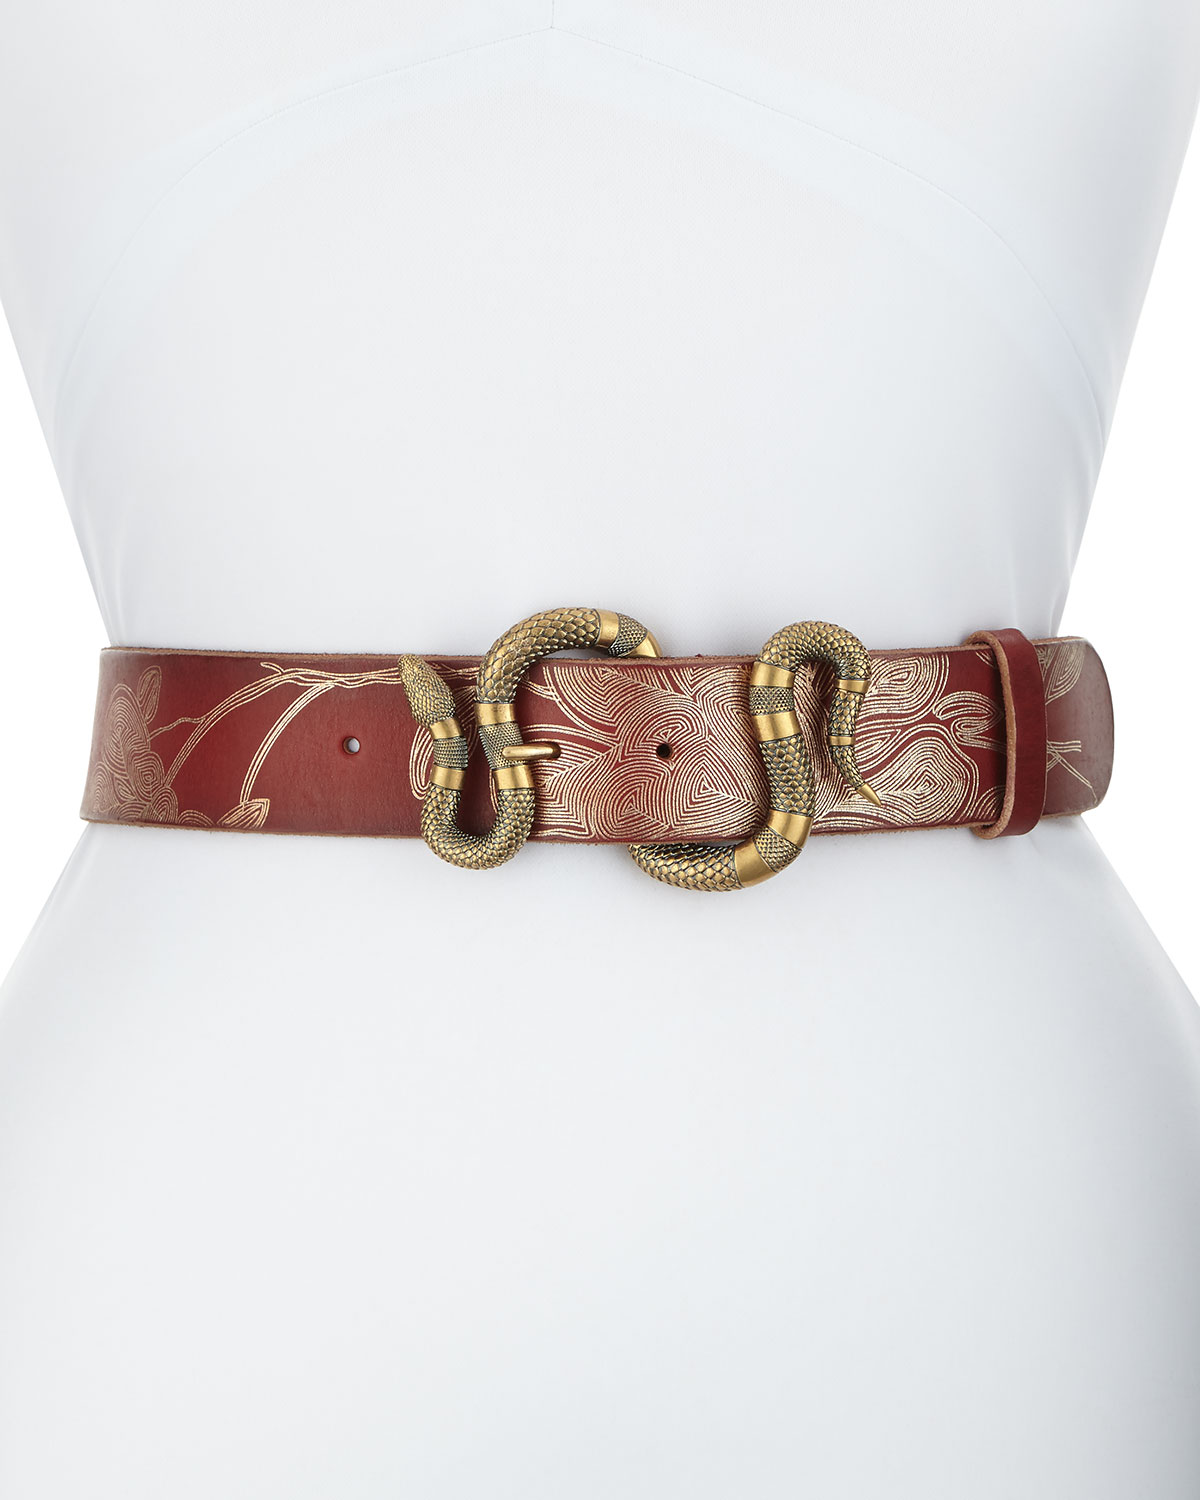 b595d2665b8 Gucci Leather Belt with Snake Buckle